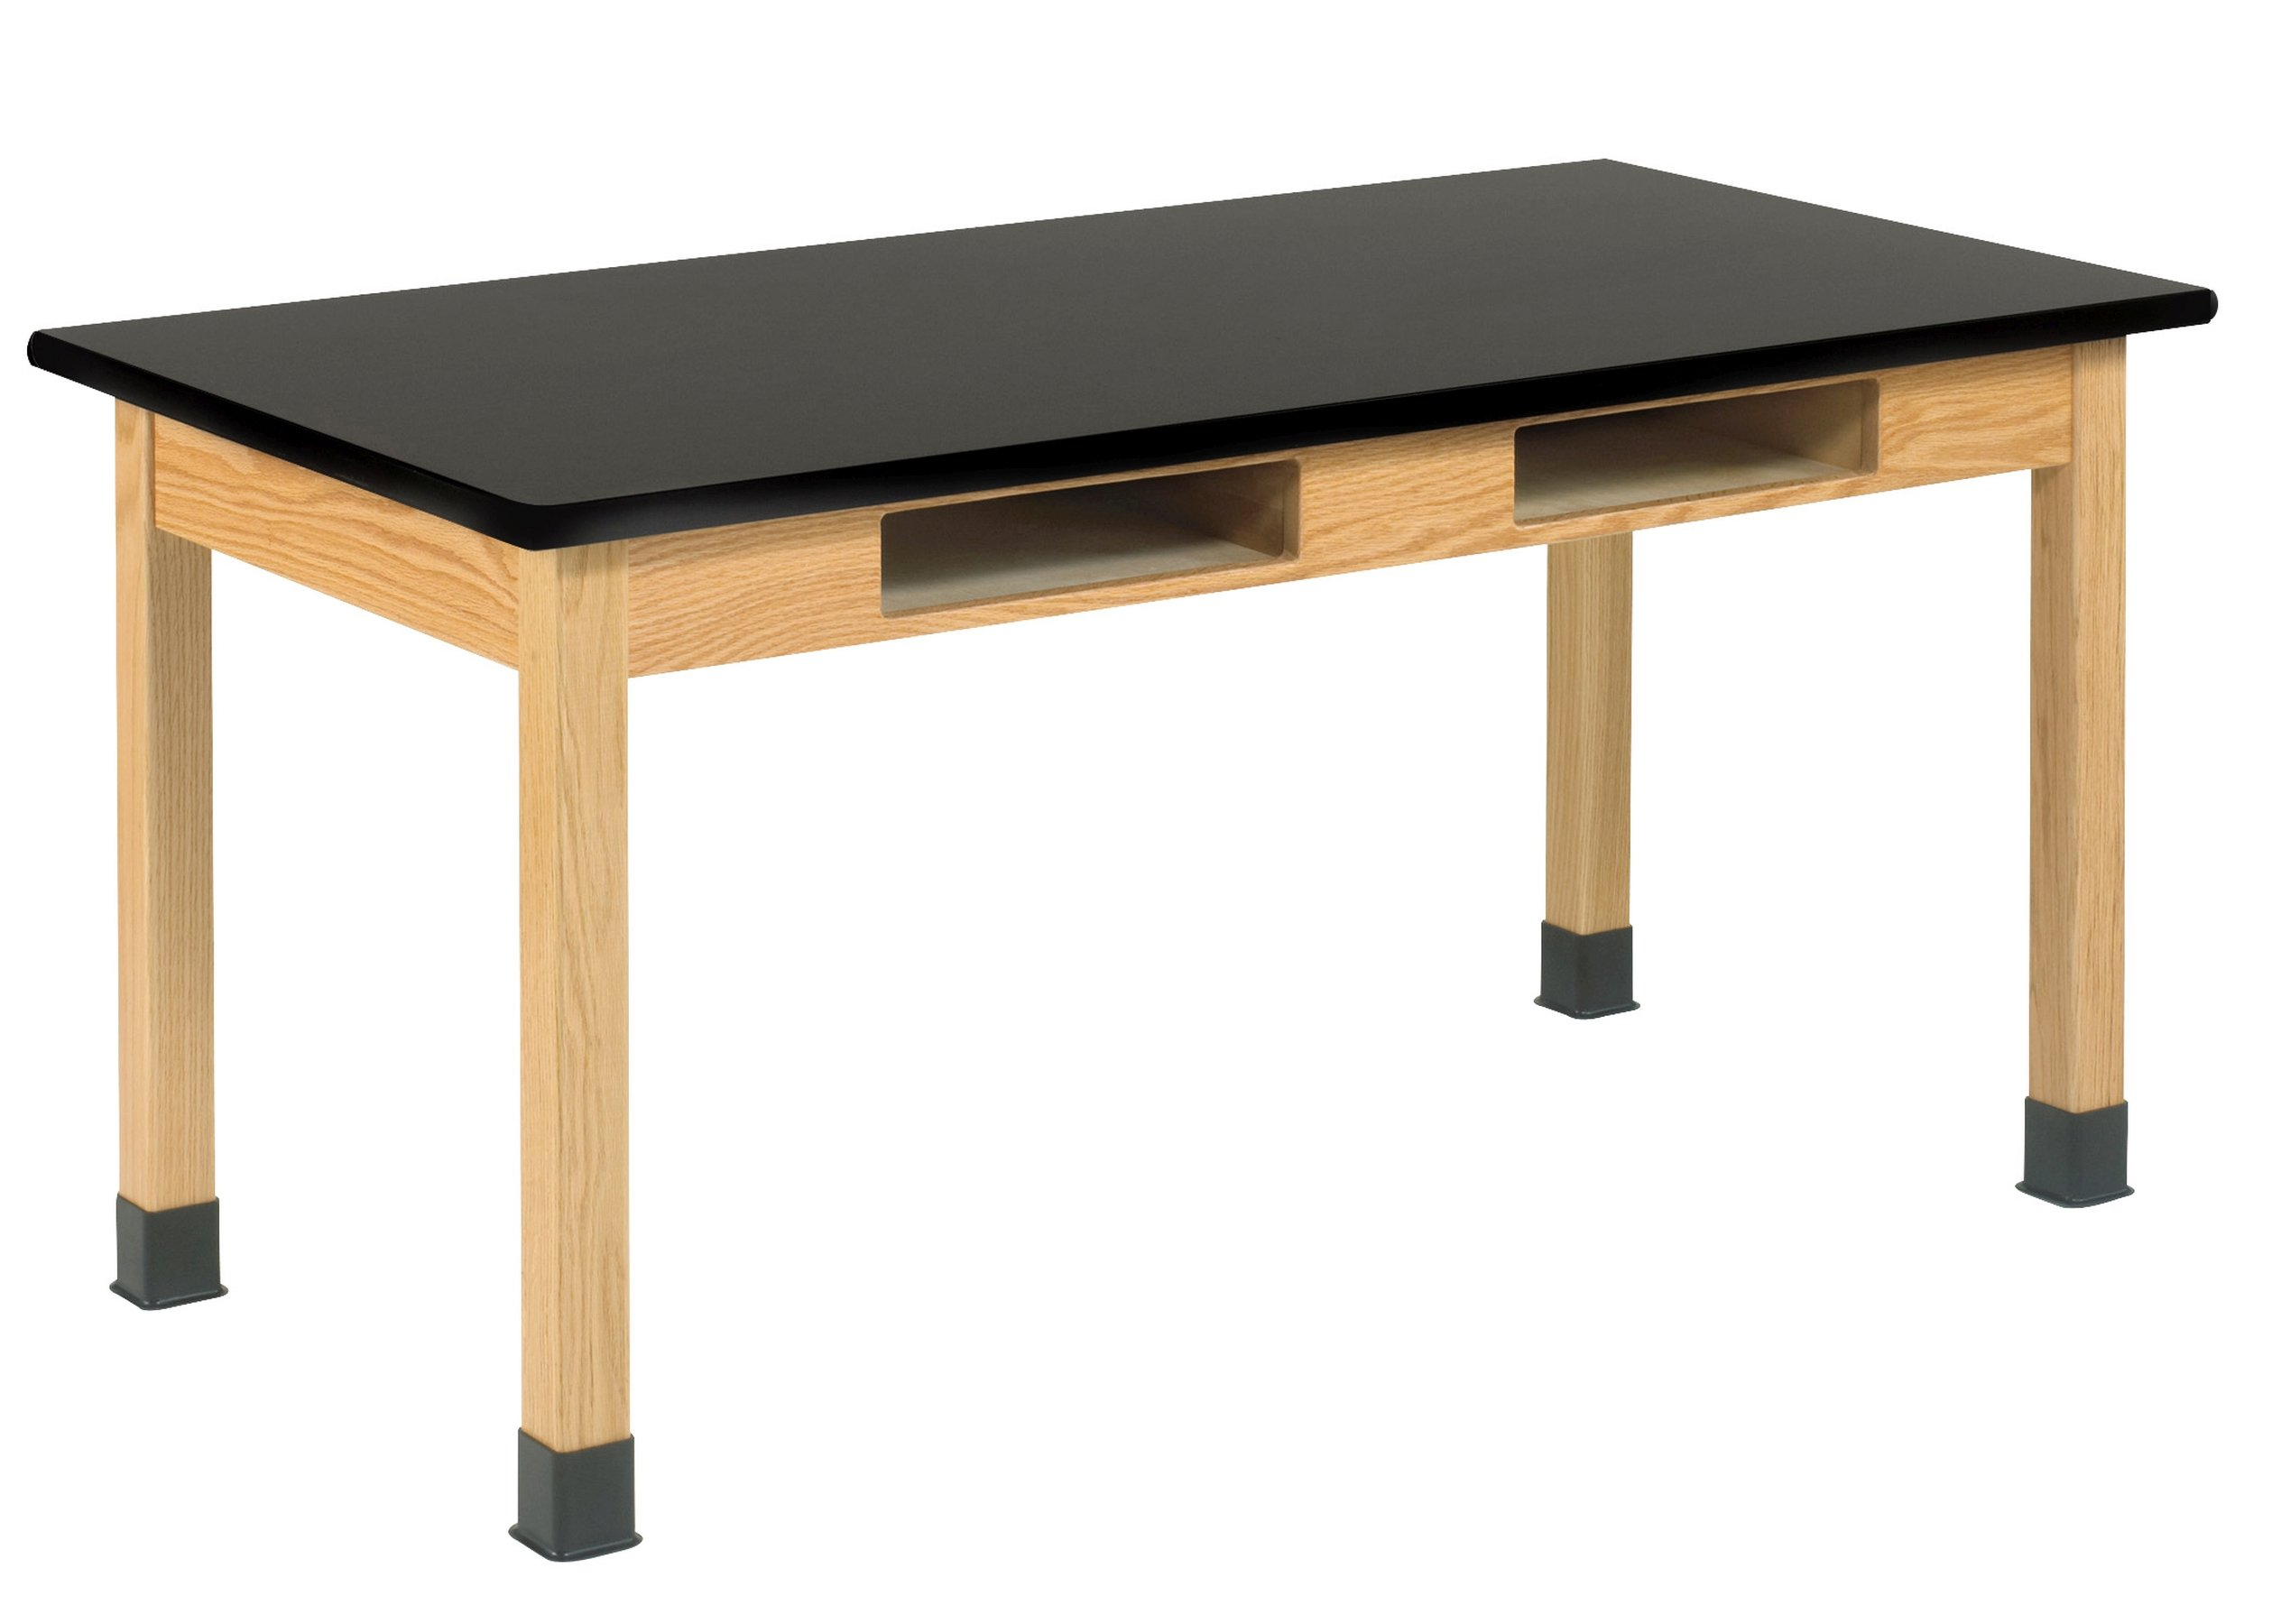 Diversified Woodcrafts C7201K30N Table - Book Compartments, Black Plastic Laminate Top, 24'' x 54'', 30'' Height, Black/Northwoods Oak by Diversified Woodcrafts (Image #1)